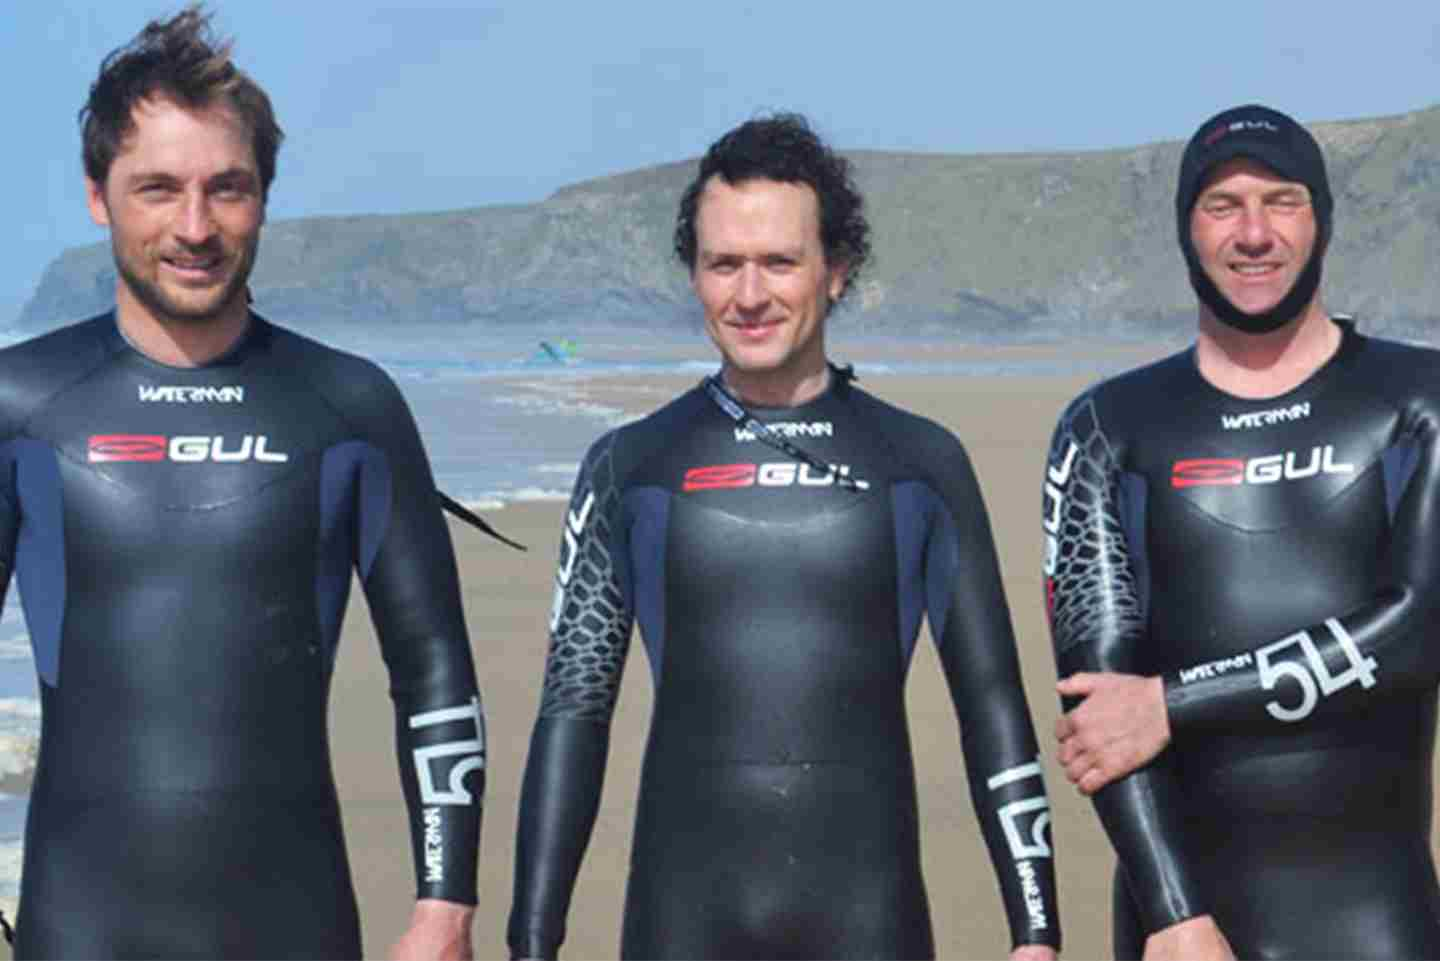 Extreme-Academy-team-testing-wetsuits.jpg